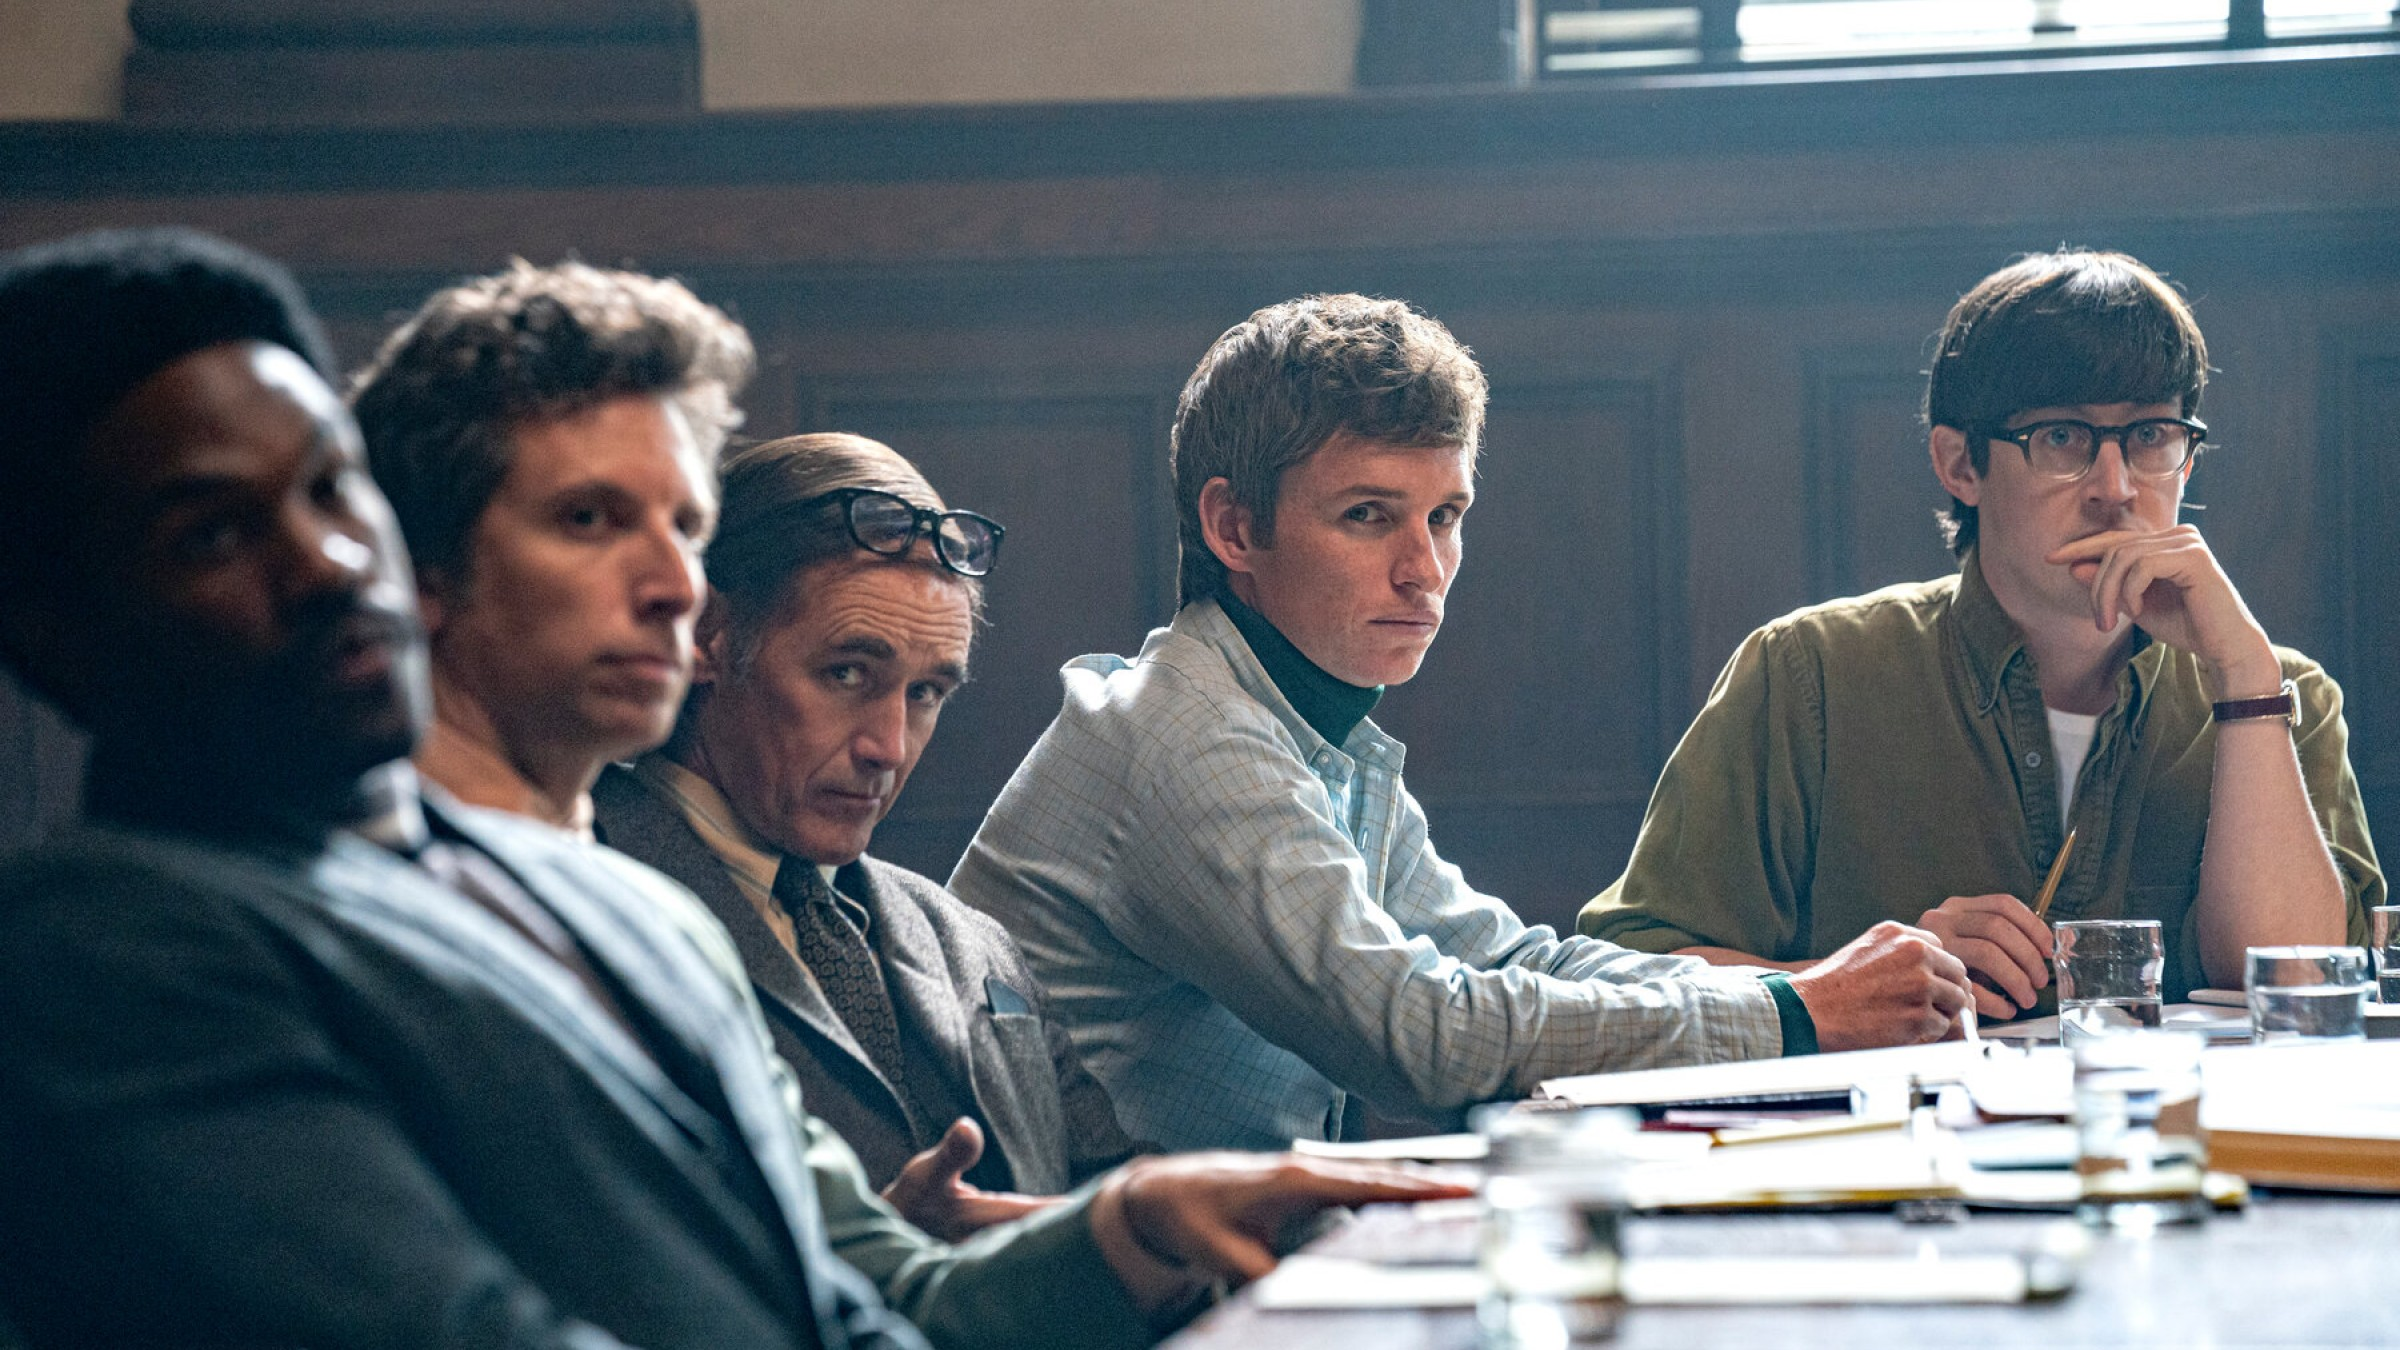 How DP Phedon Papamichael Kept the Courtroom Interesting in Sorkin's 'The Trial of the Chicago 7'